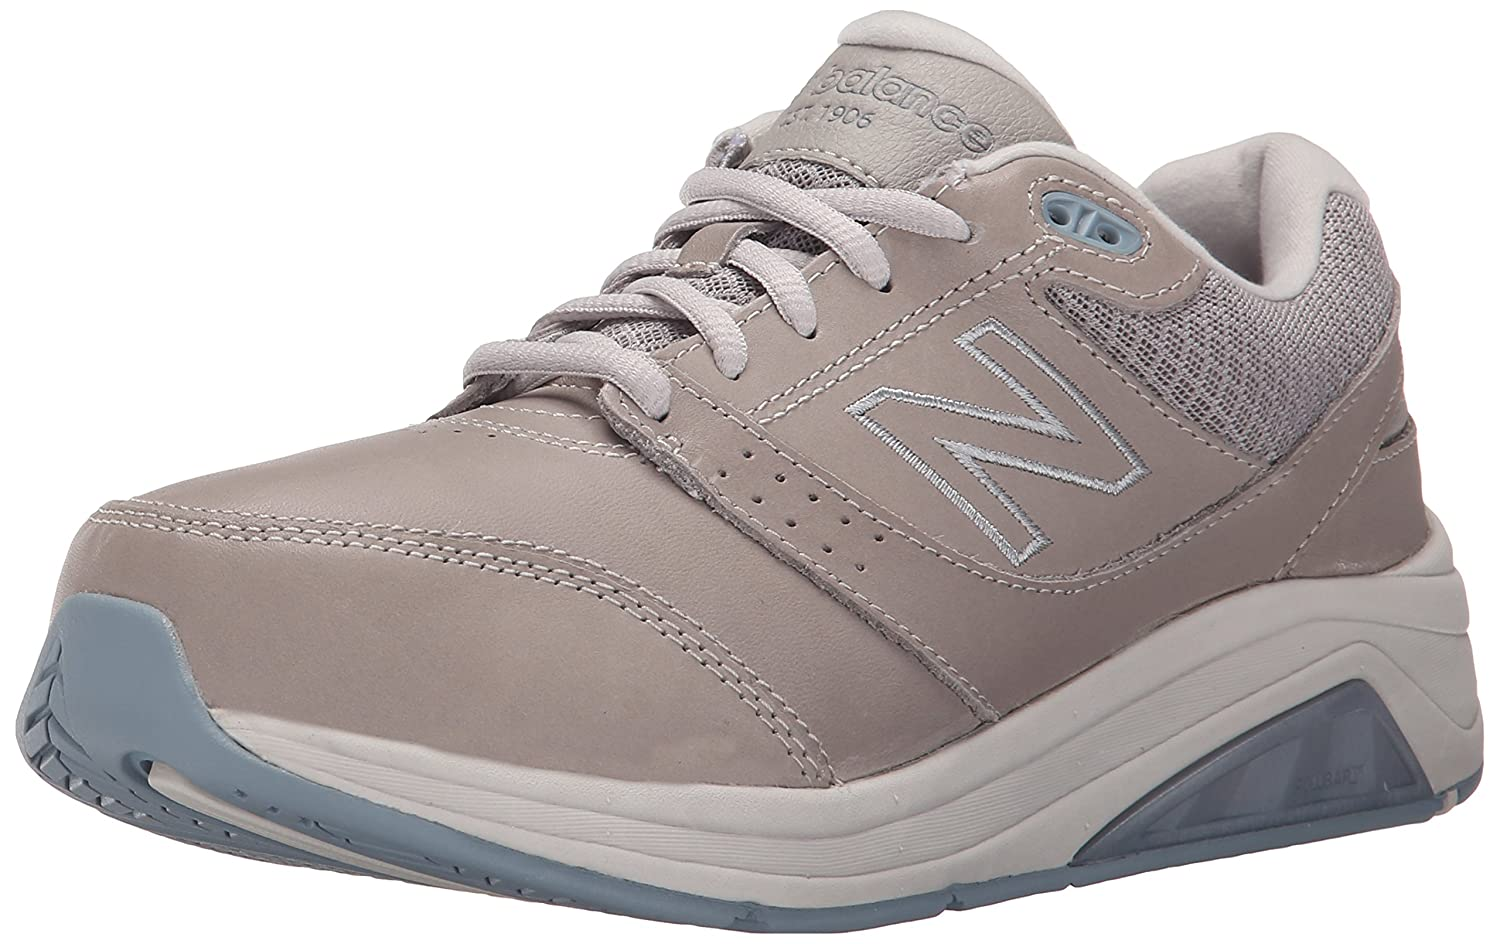 New Balance Women's 6.5 928v2 Walking Shoe B00Z7K4MKW 6.5 Women's 4E US|Grey e2ffb2